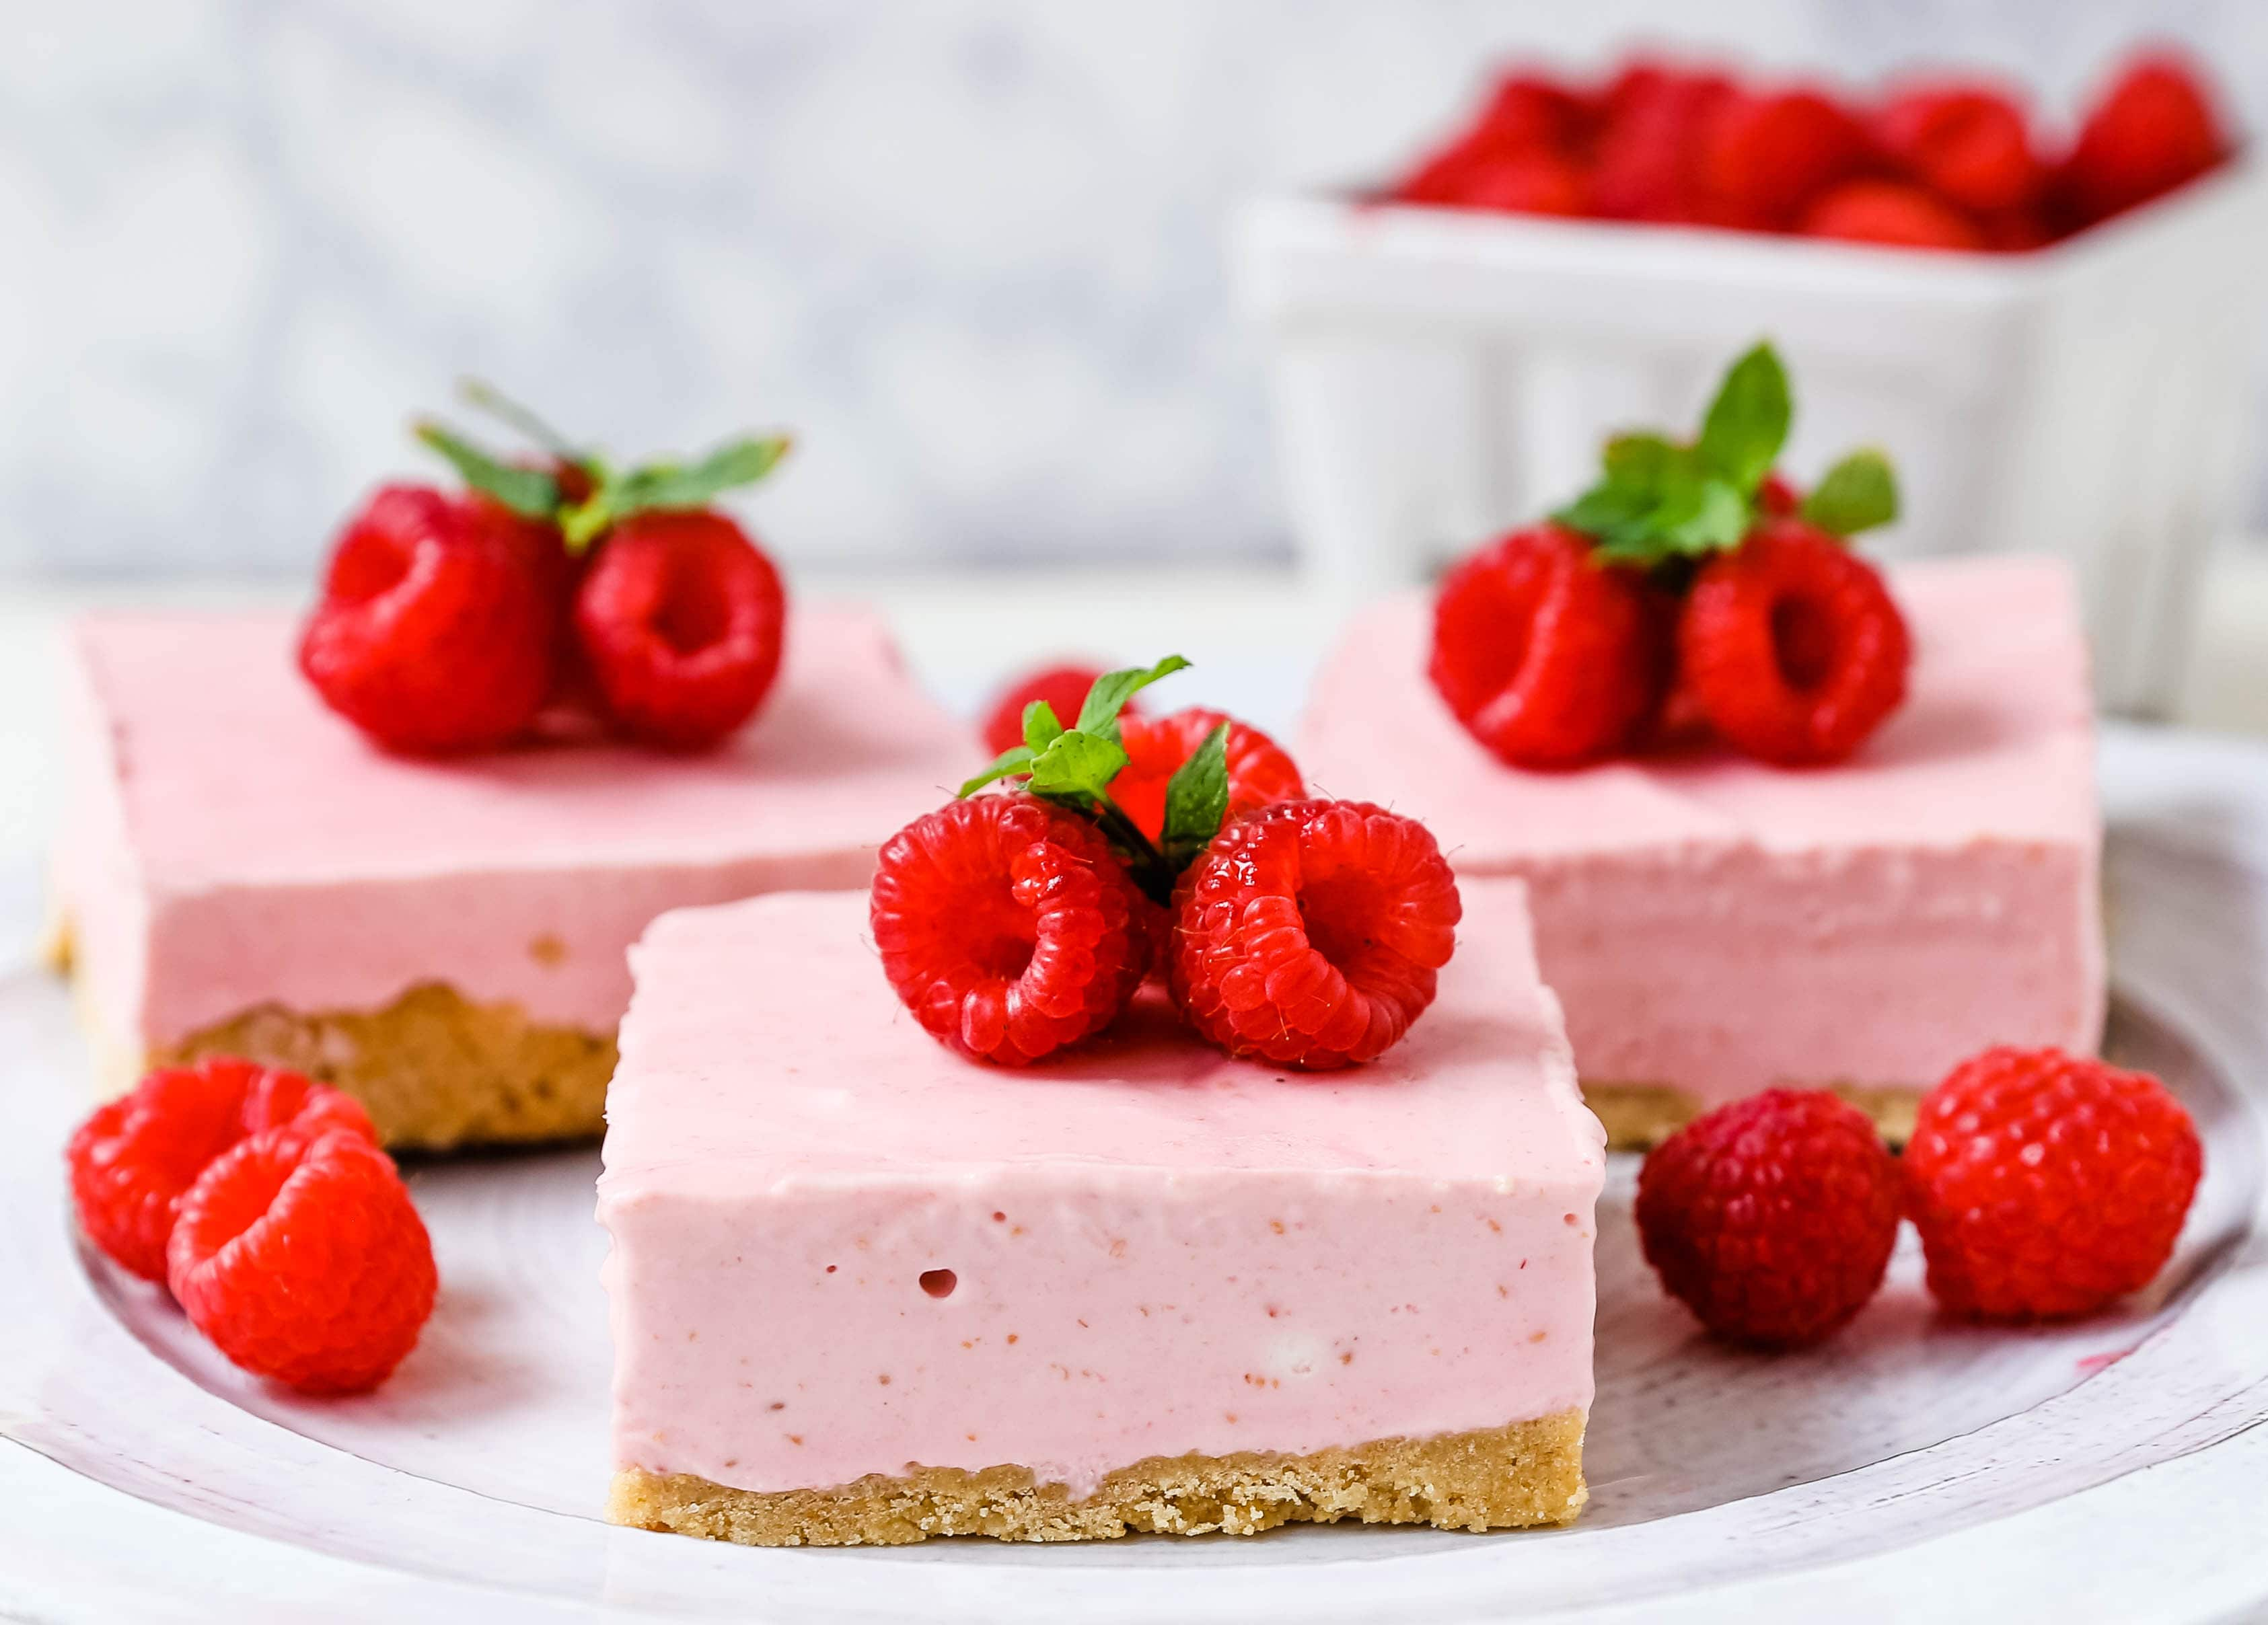 No-Bake Frozen Raspberry Cheesecake Squares. Creamy no-bake raspberry cheesecake filling on top of a shortbread or graham cracker crust topped with fresh raspberries. A creamy no-bake frozen dessert.  www.modernhoney.com #nobakedessert #raspberrycheesecake #cheesecakesquares #frozendessert #frozencheesecake